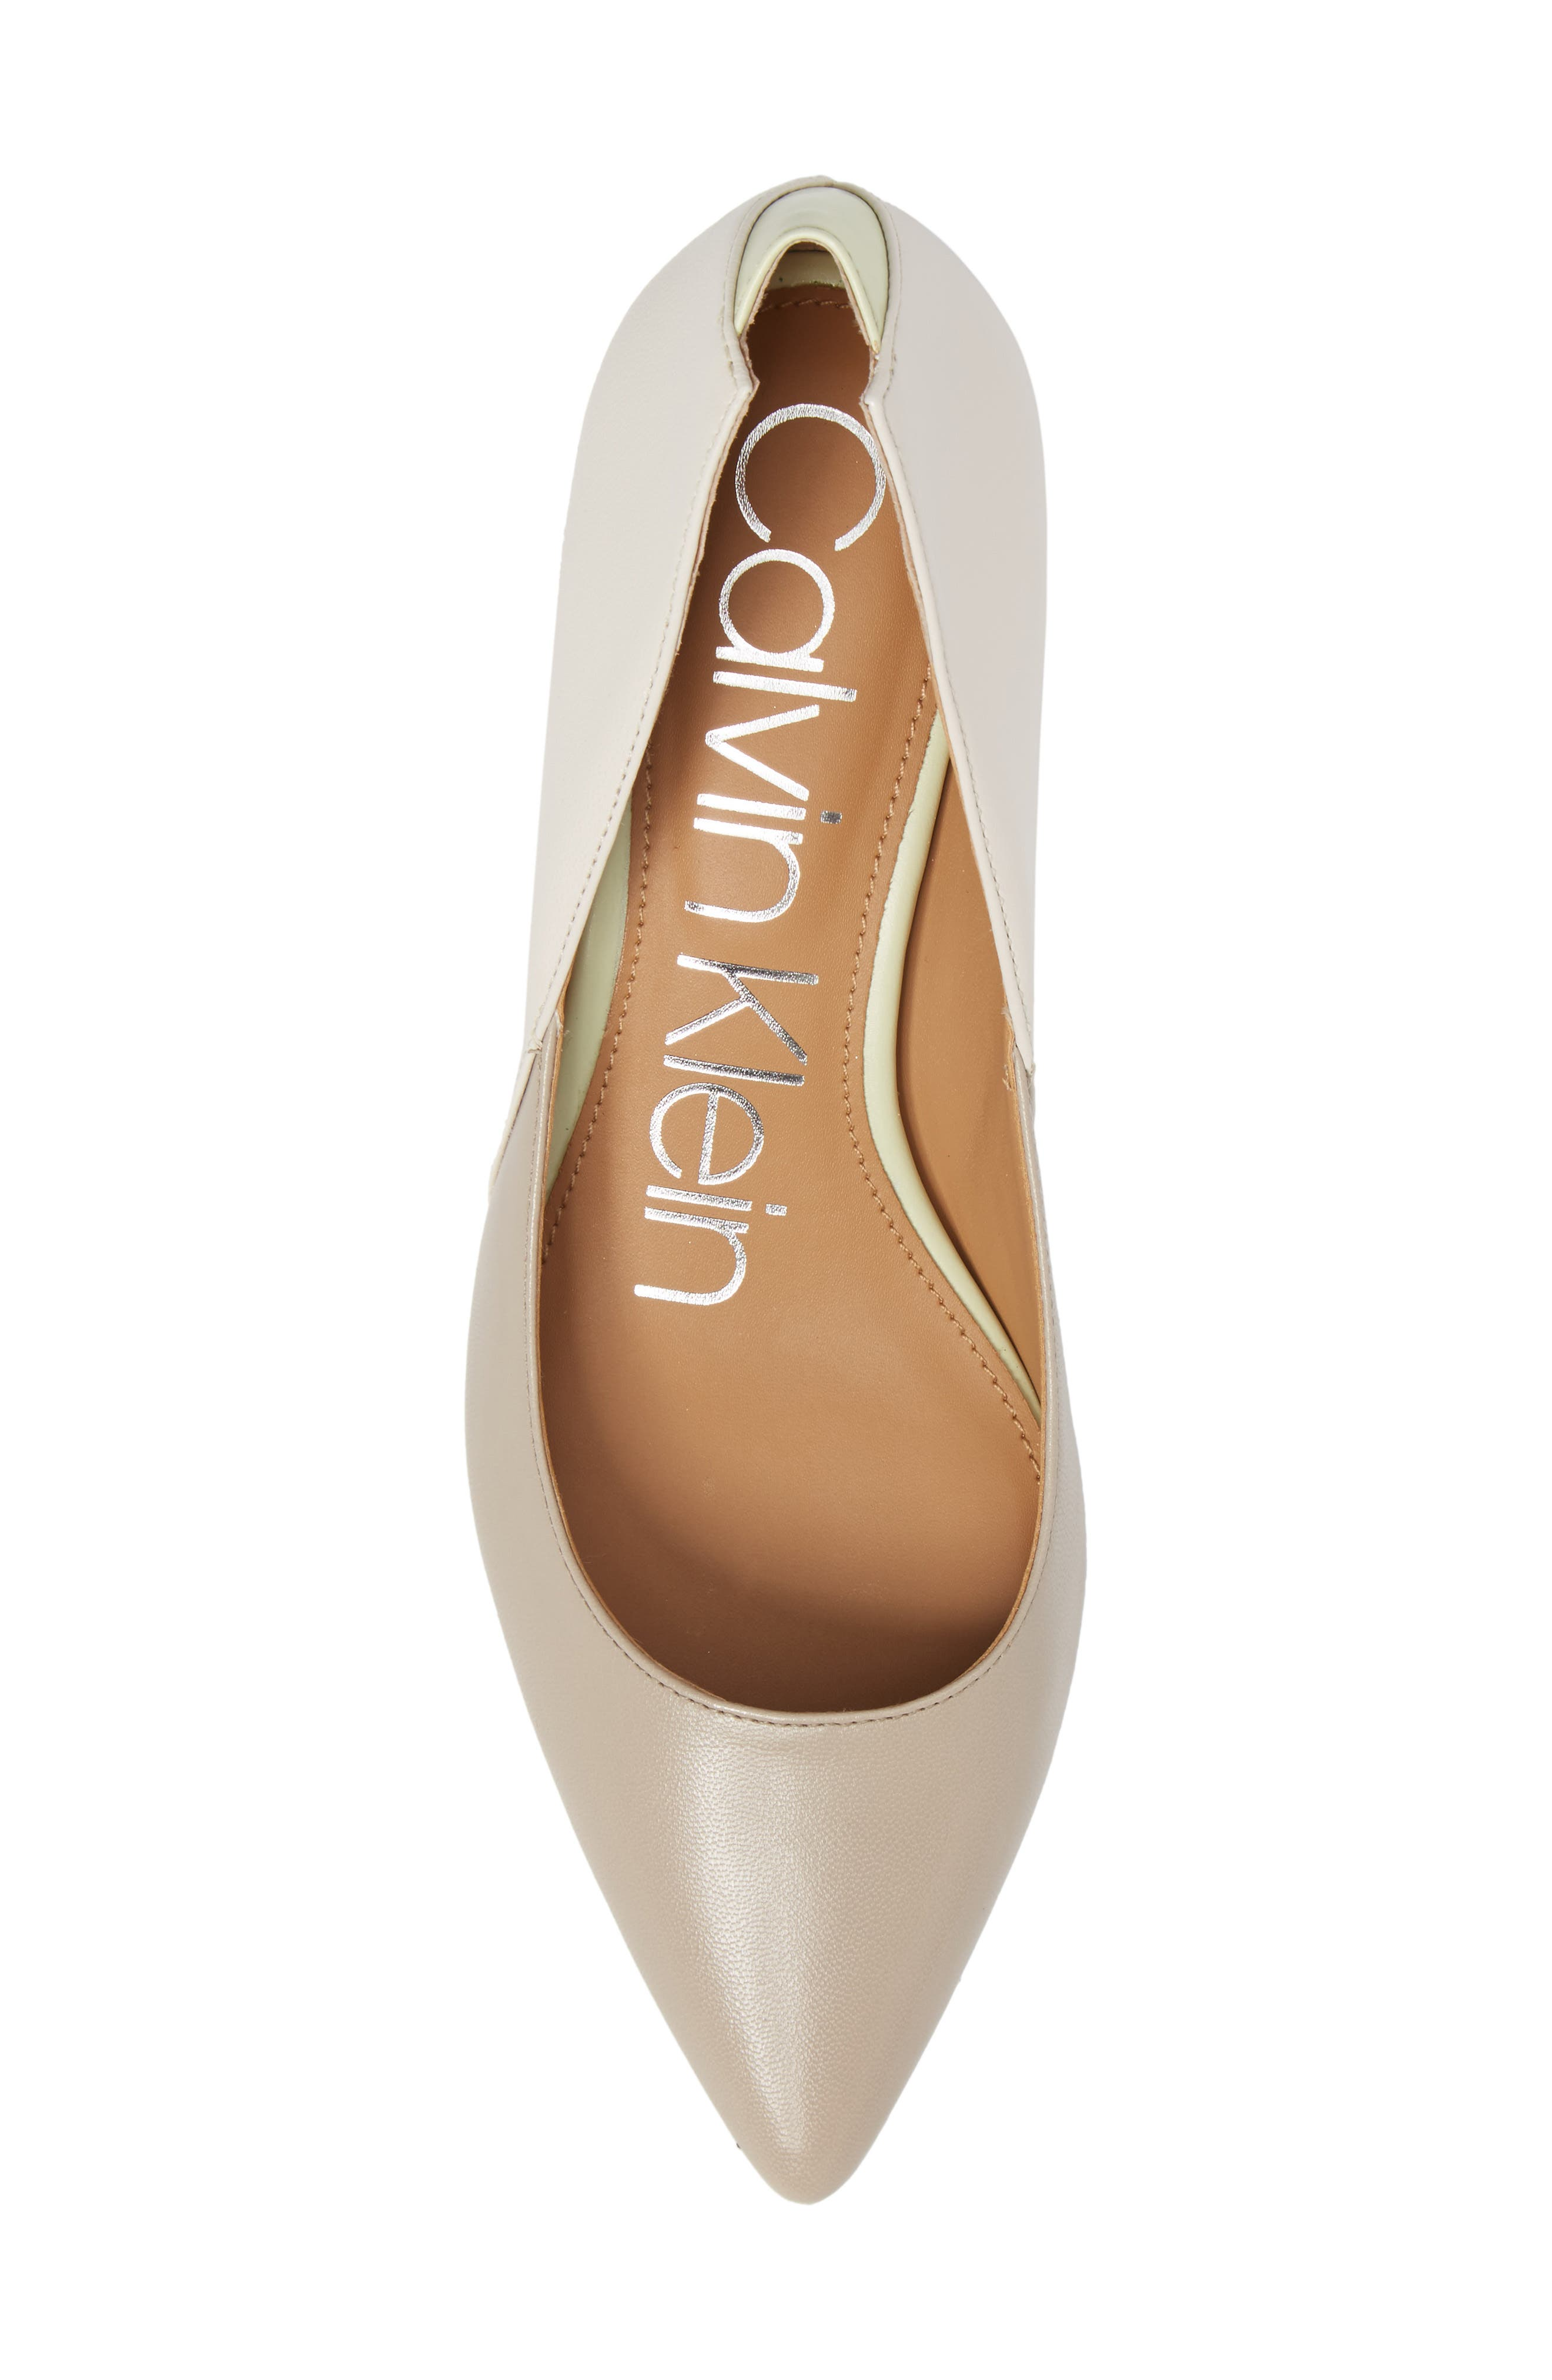 Grayce Pointy Toe Pump,                             Alternate thumbnail 5, color,                             Clay/ White Leather